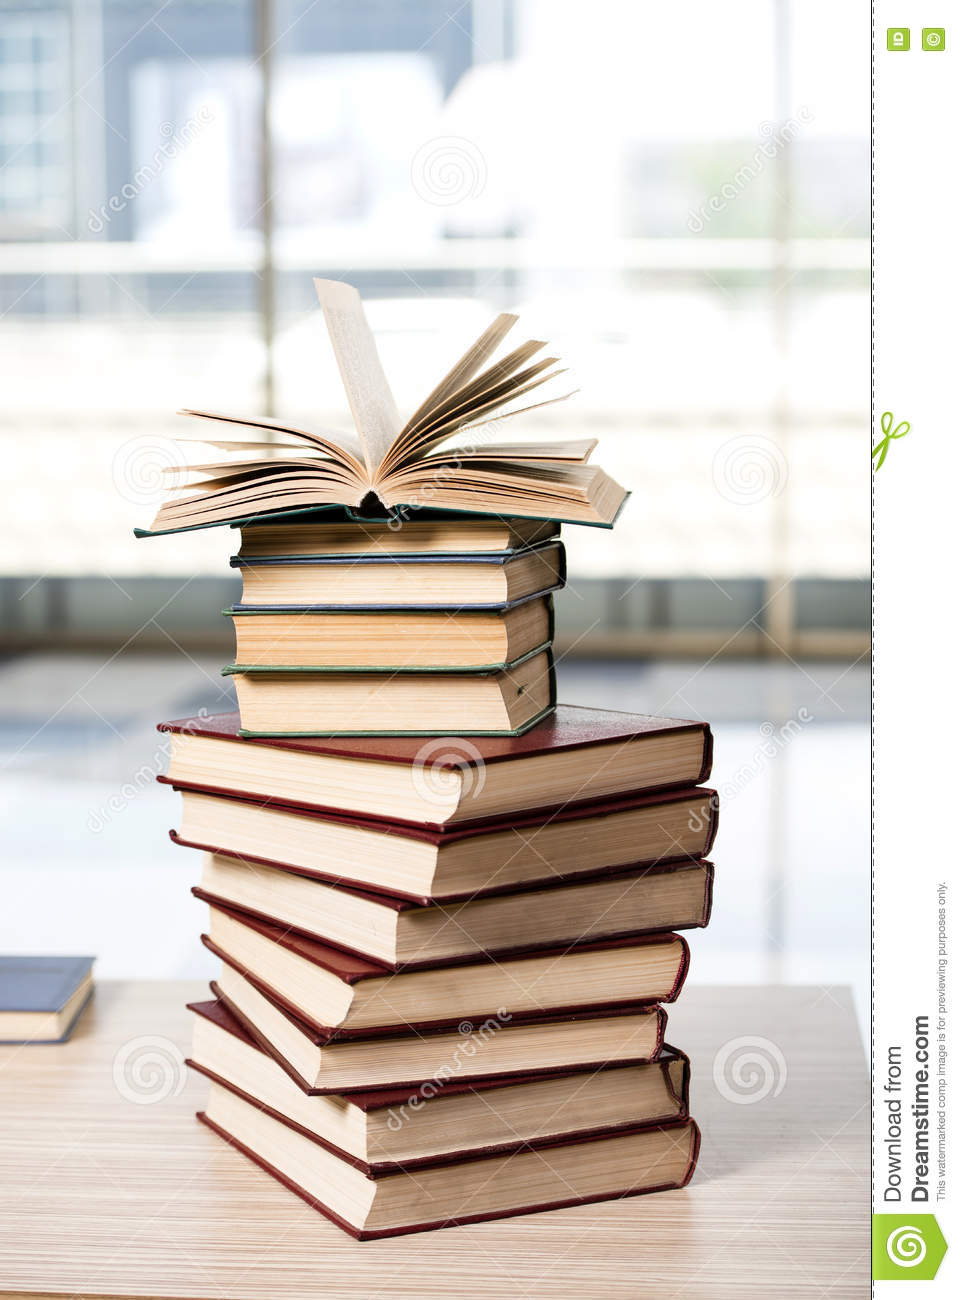 Superb The Stack Of Books Arranged The Office Desk Stock Photo Interior Design Ideas Clesiryabchikinfo